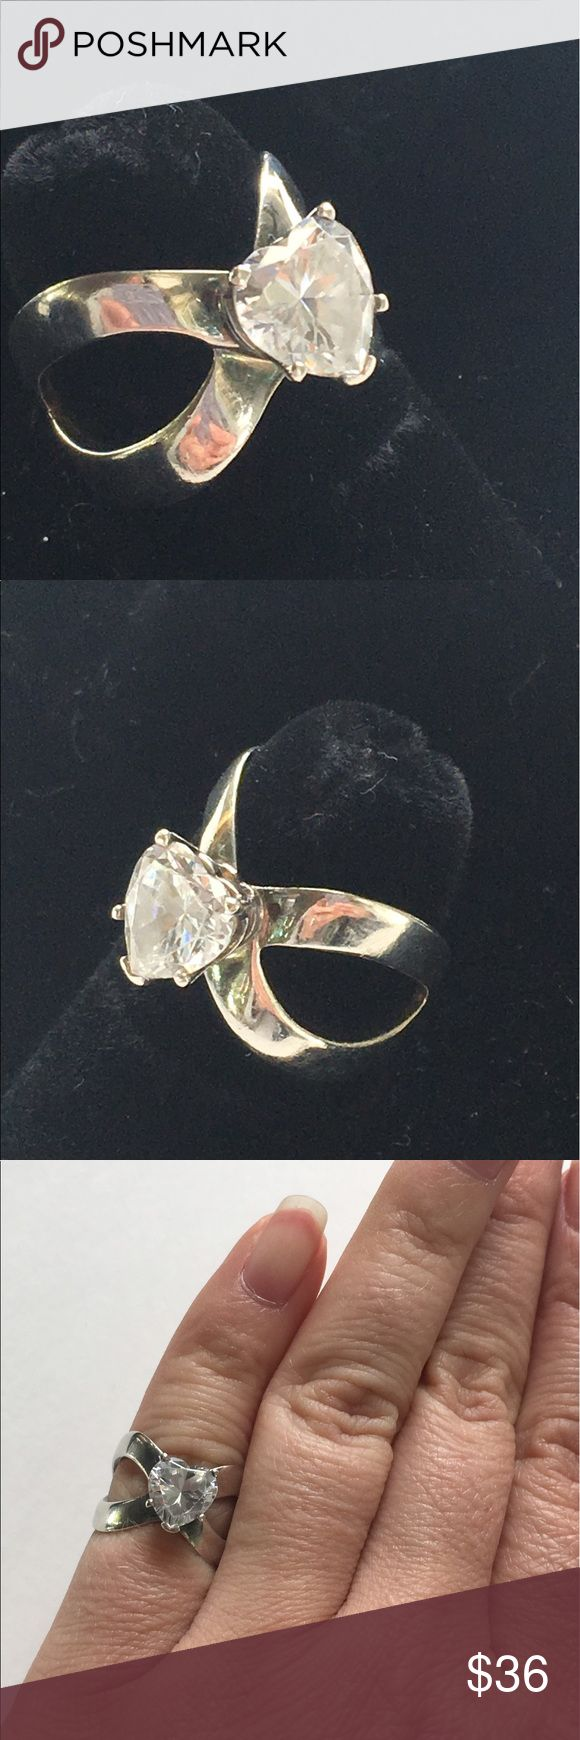 Heart shaped CZ ring Sterling silver vintage A beautiful ring with a heart shaped CZ stone on open band. The styling on this is so stunning! It would make a great affordable engagement ring option. Stamped 925 CZ. Overall good used condition showing light signs of use. Approx size 5. Sorry NO TRADES! Vintage Jewelry Rings